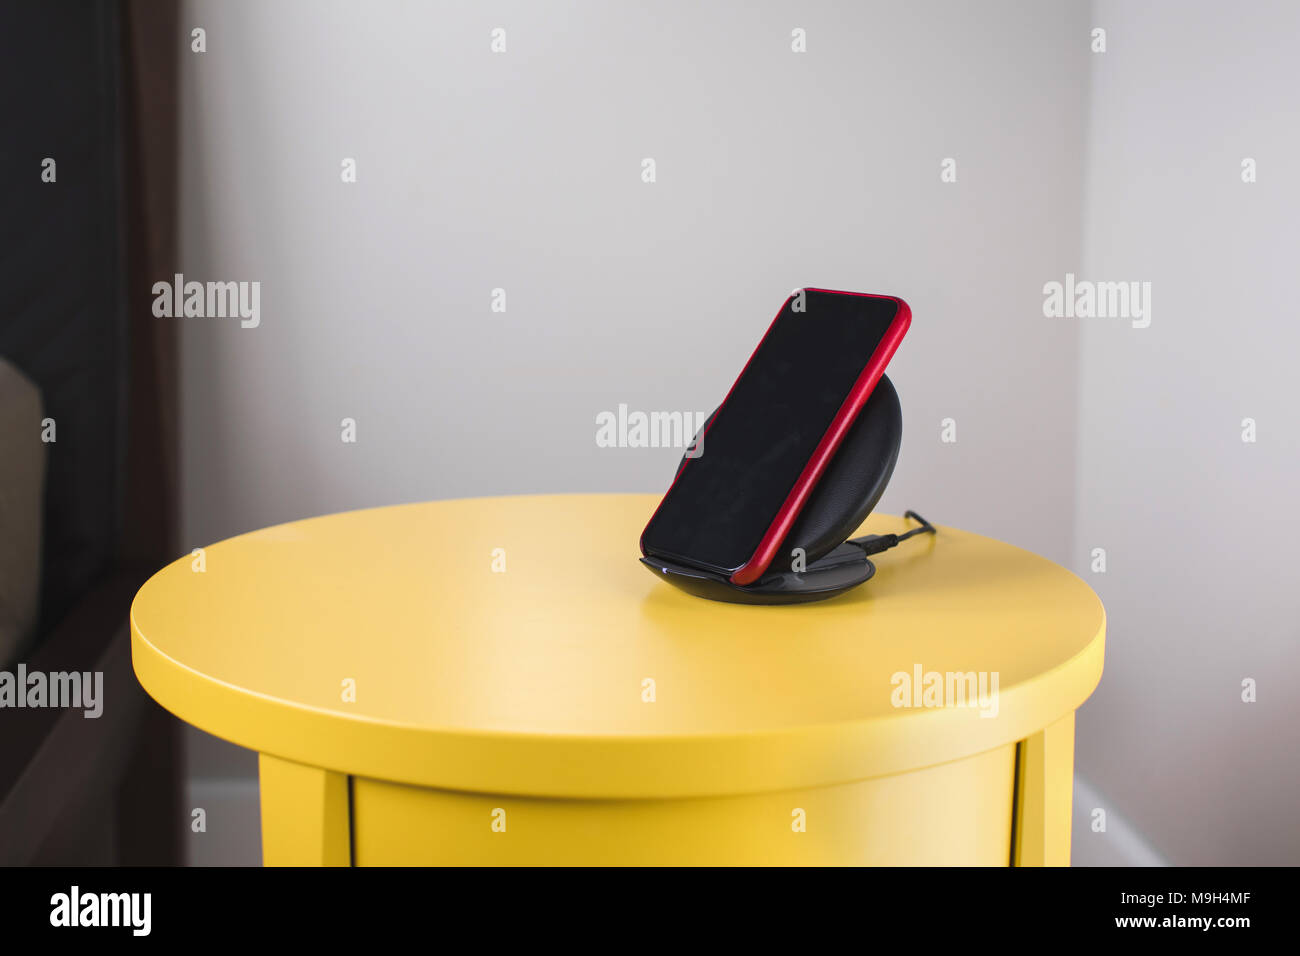 Smartphone on a wireless fast charger station - Stock Image